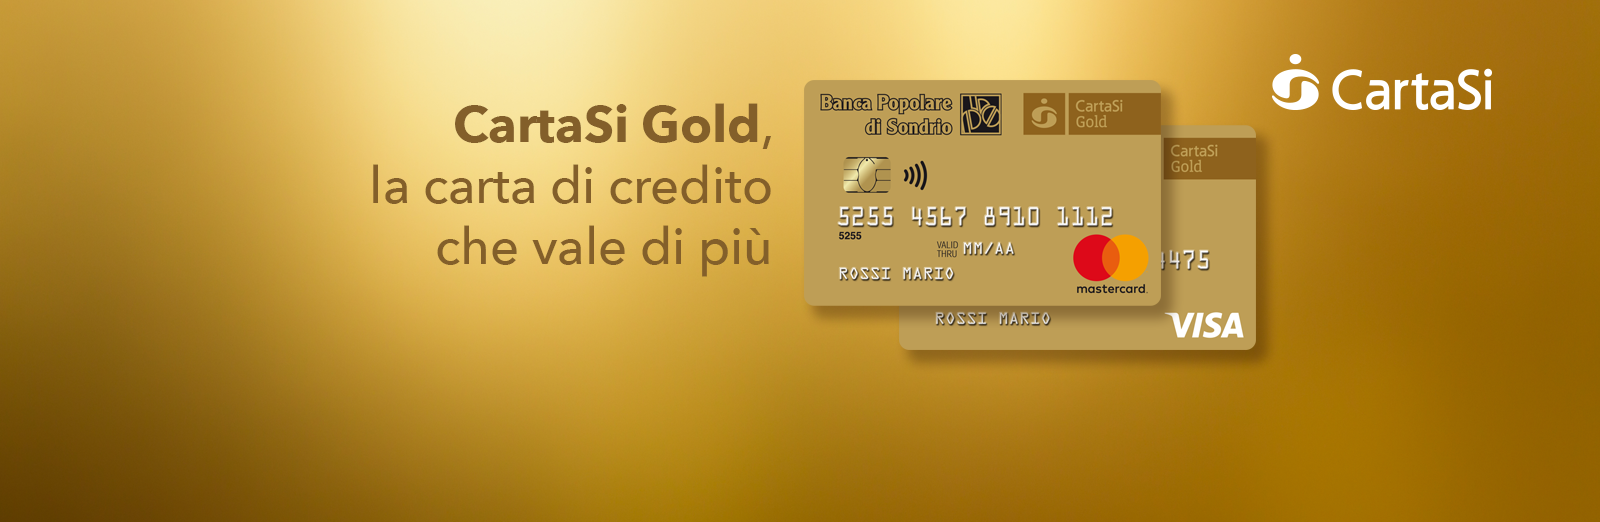 CartaSì Gold